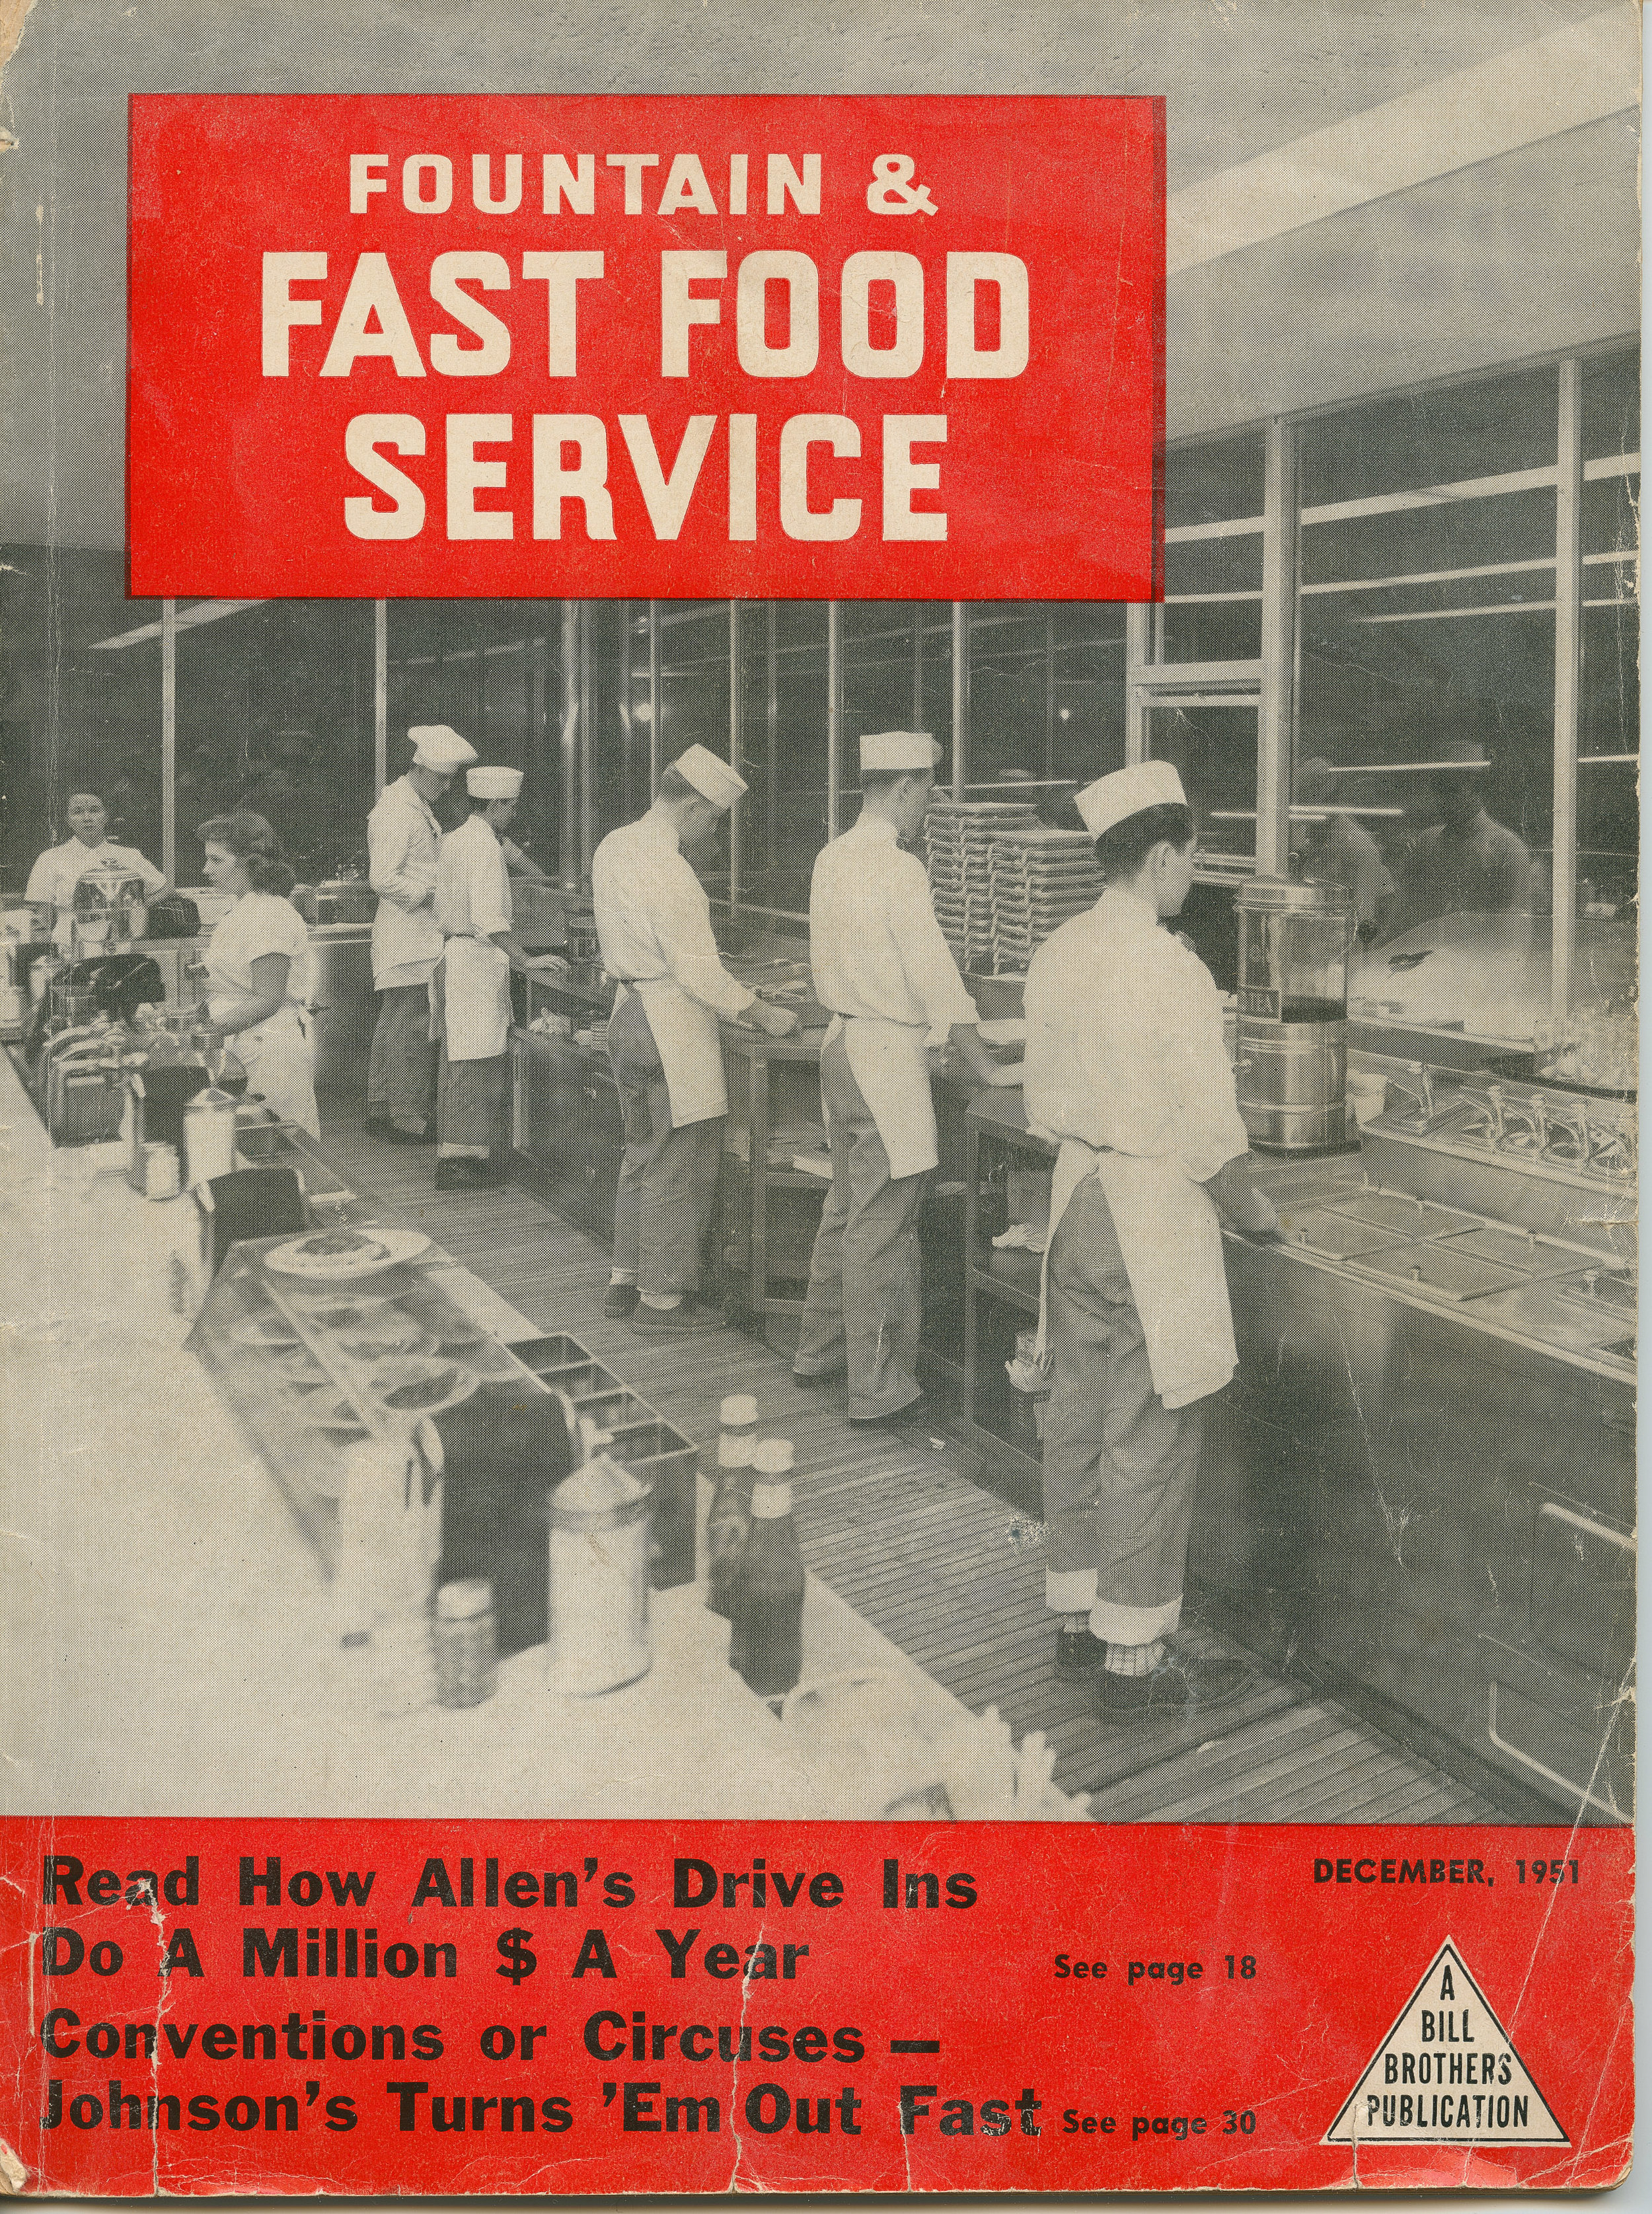 Fountain & Fast Food Service cover, December 1951